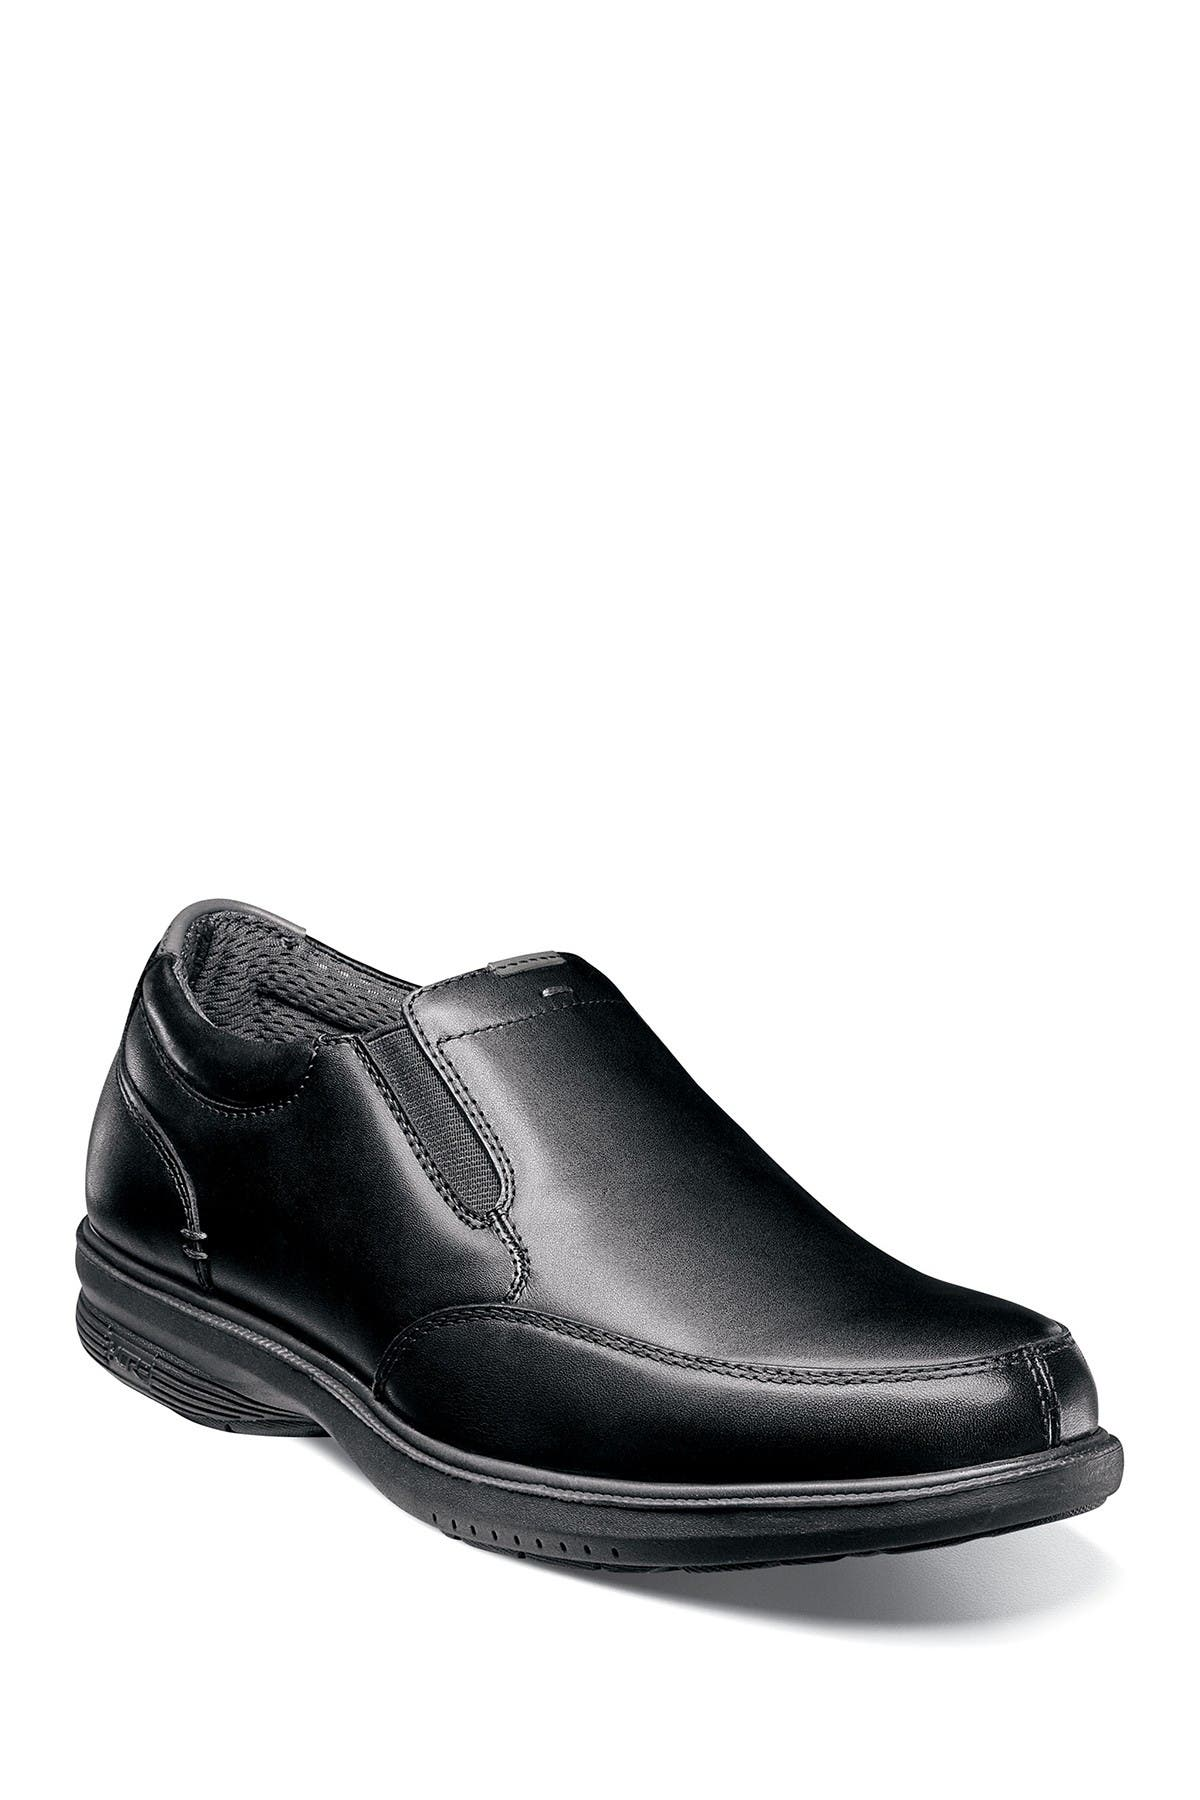 Image of NUNN BUSH Myles Leather Venetian Loafer - Multiple Widths Available